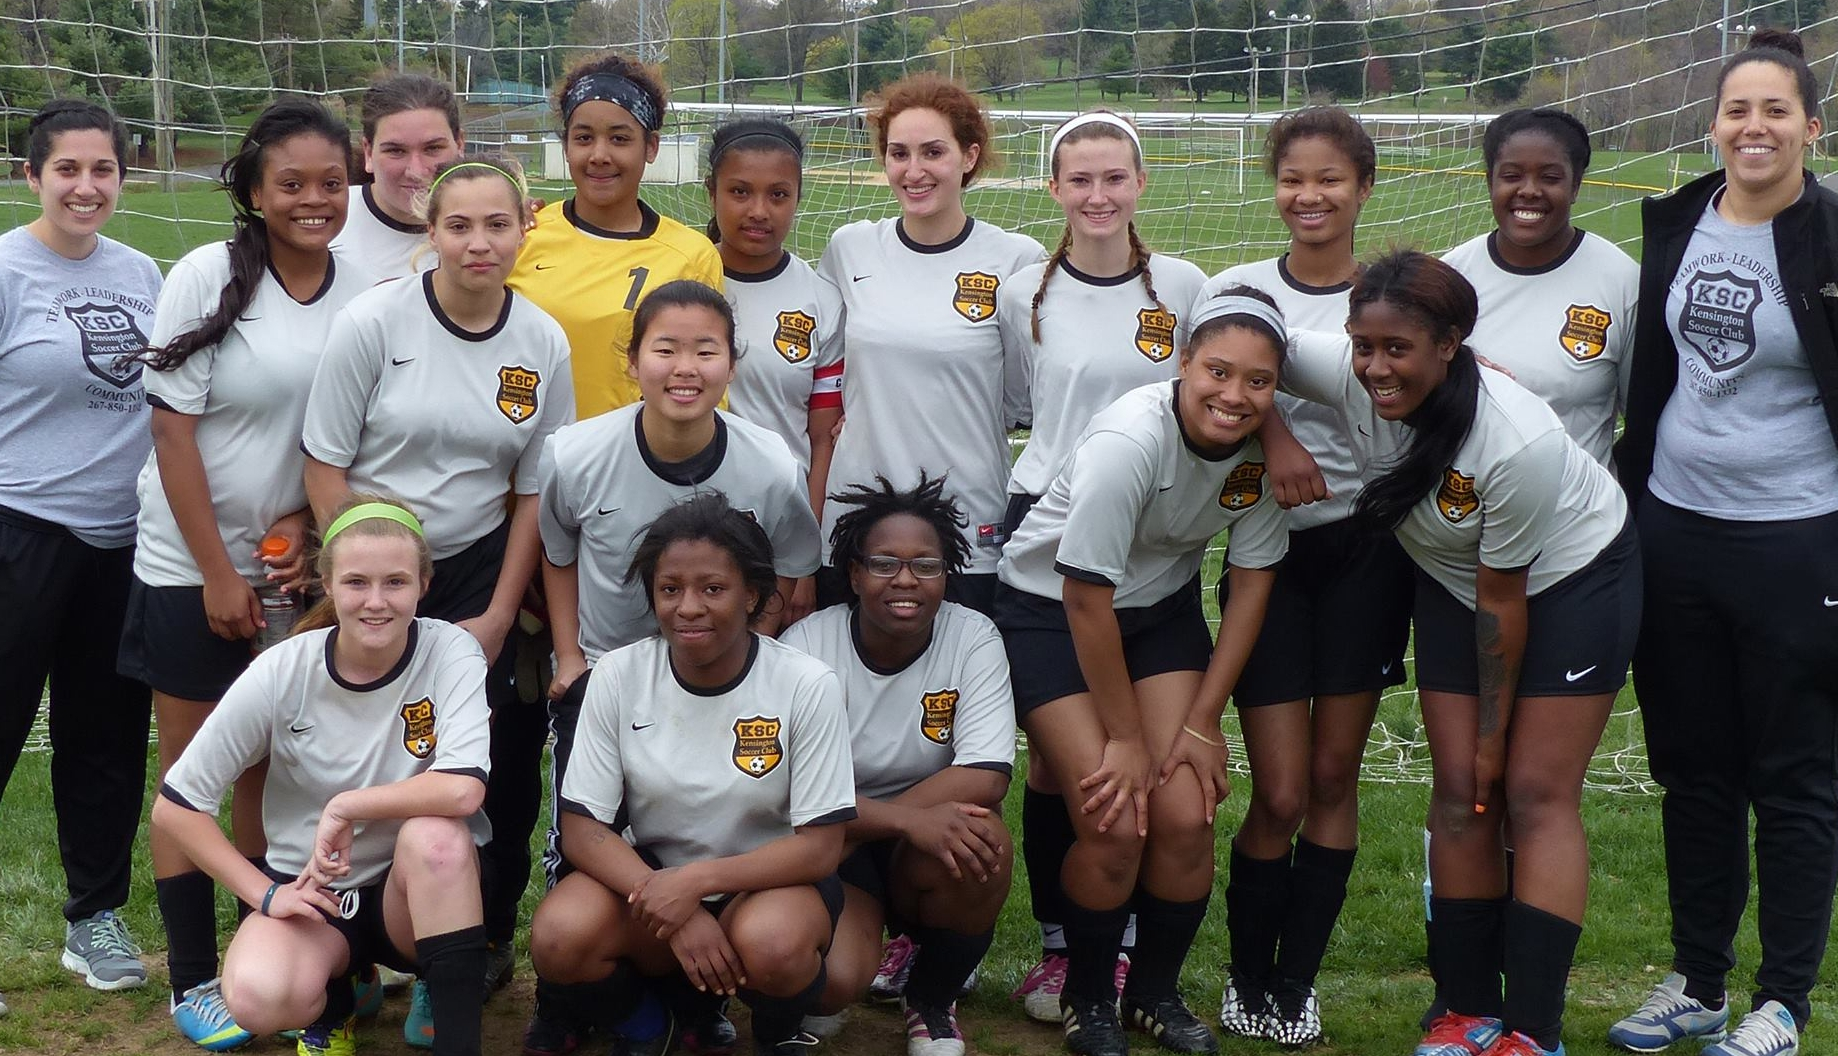 Our first u19 girls full outdoor travel team!